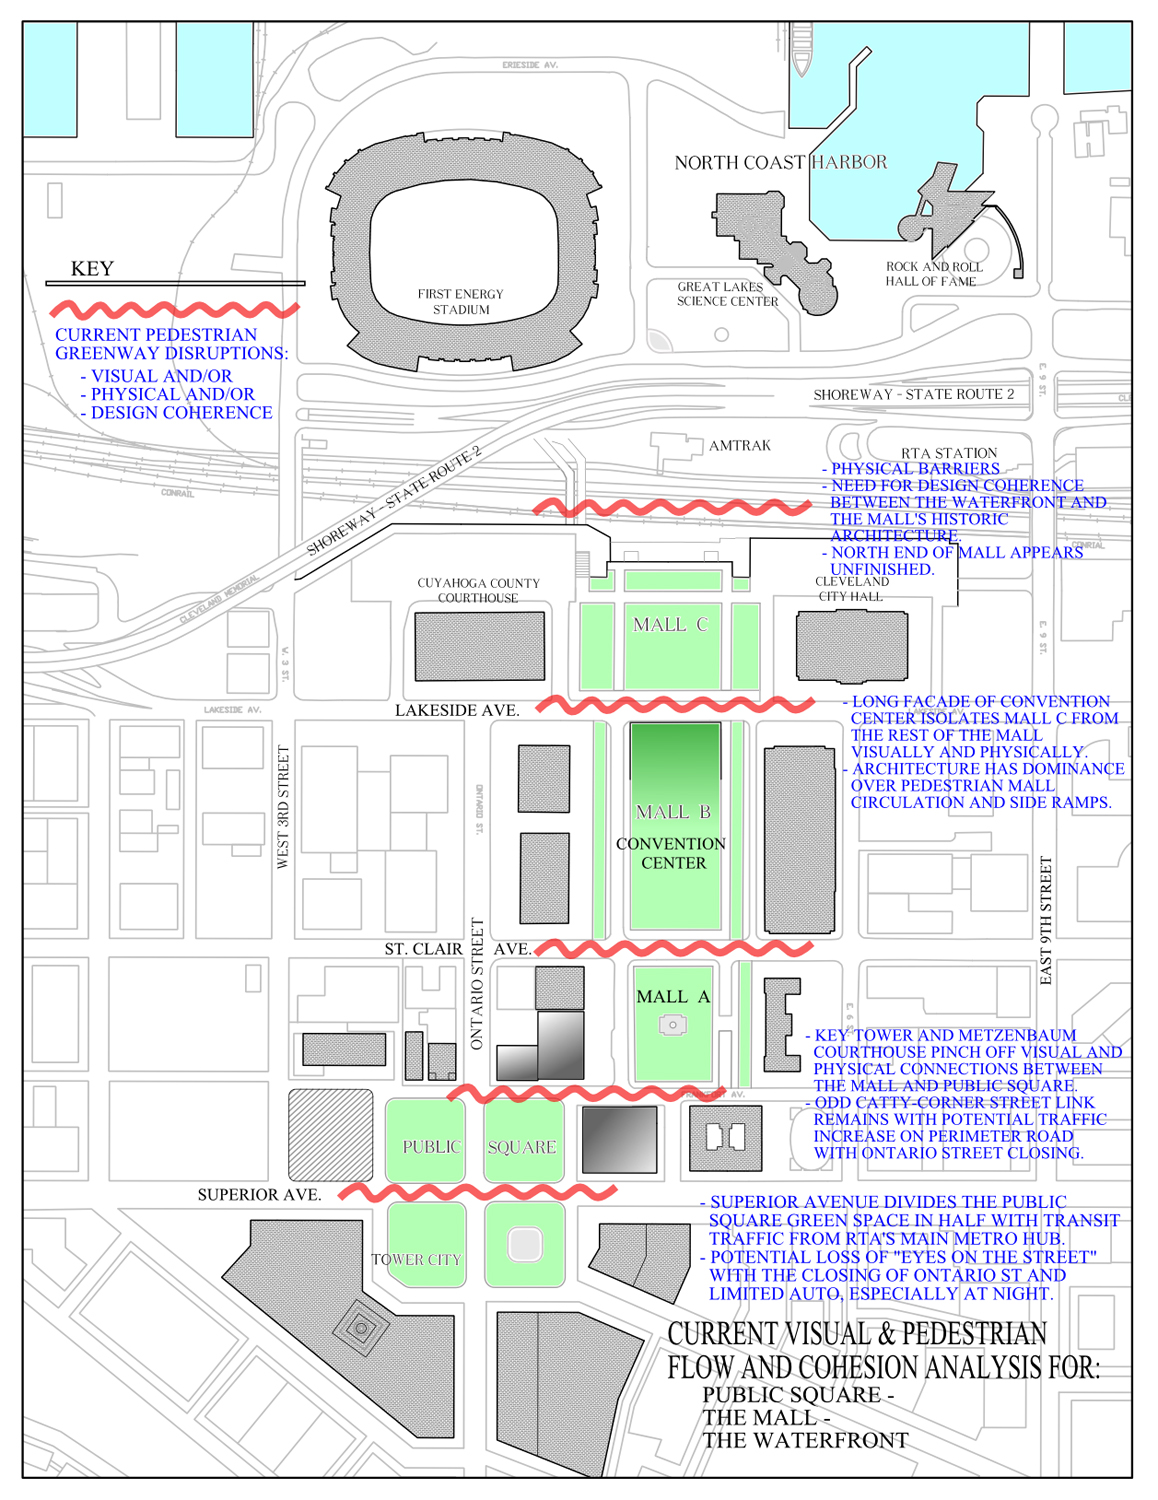 Analysis of Cleveland Public Square, The Mall, & Waterfront